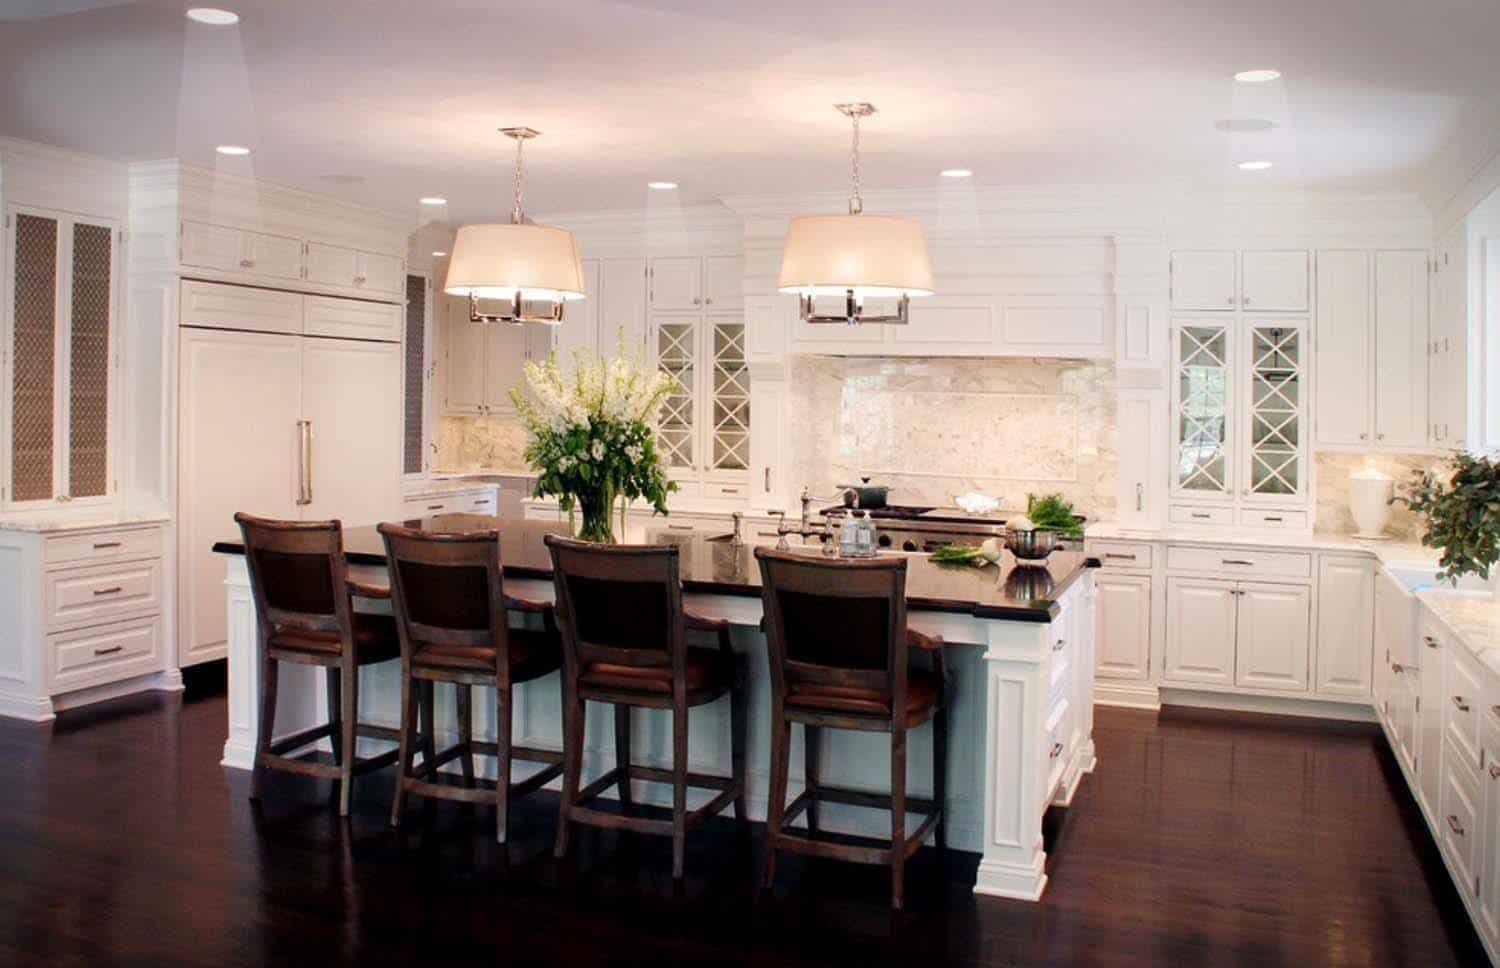 Kitchen Island Ideas-15-1 Kindesign